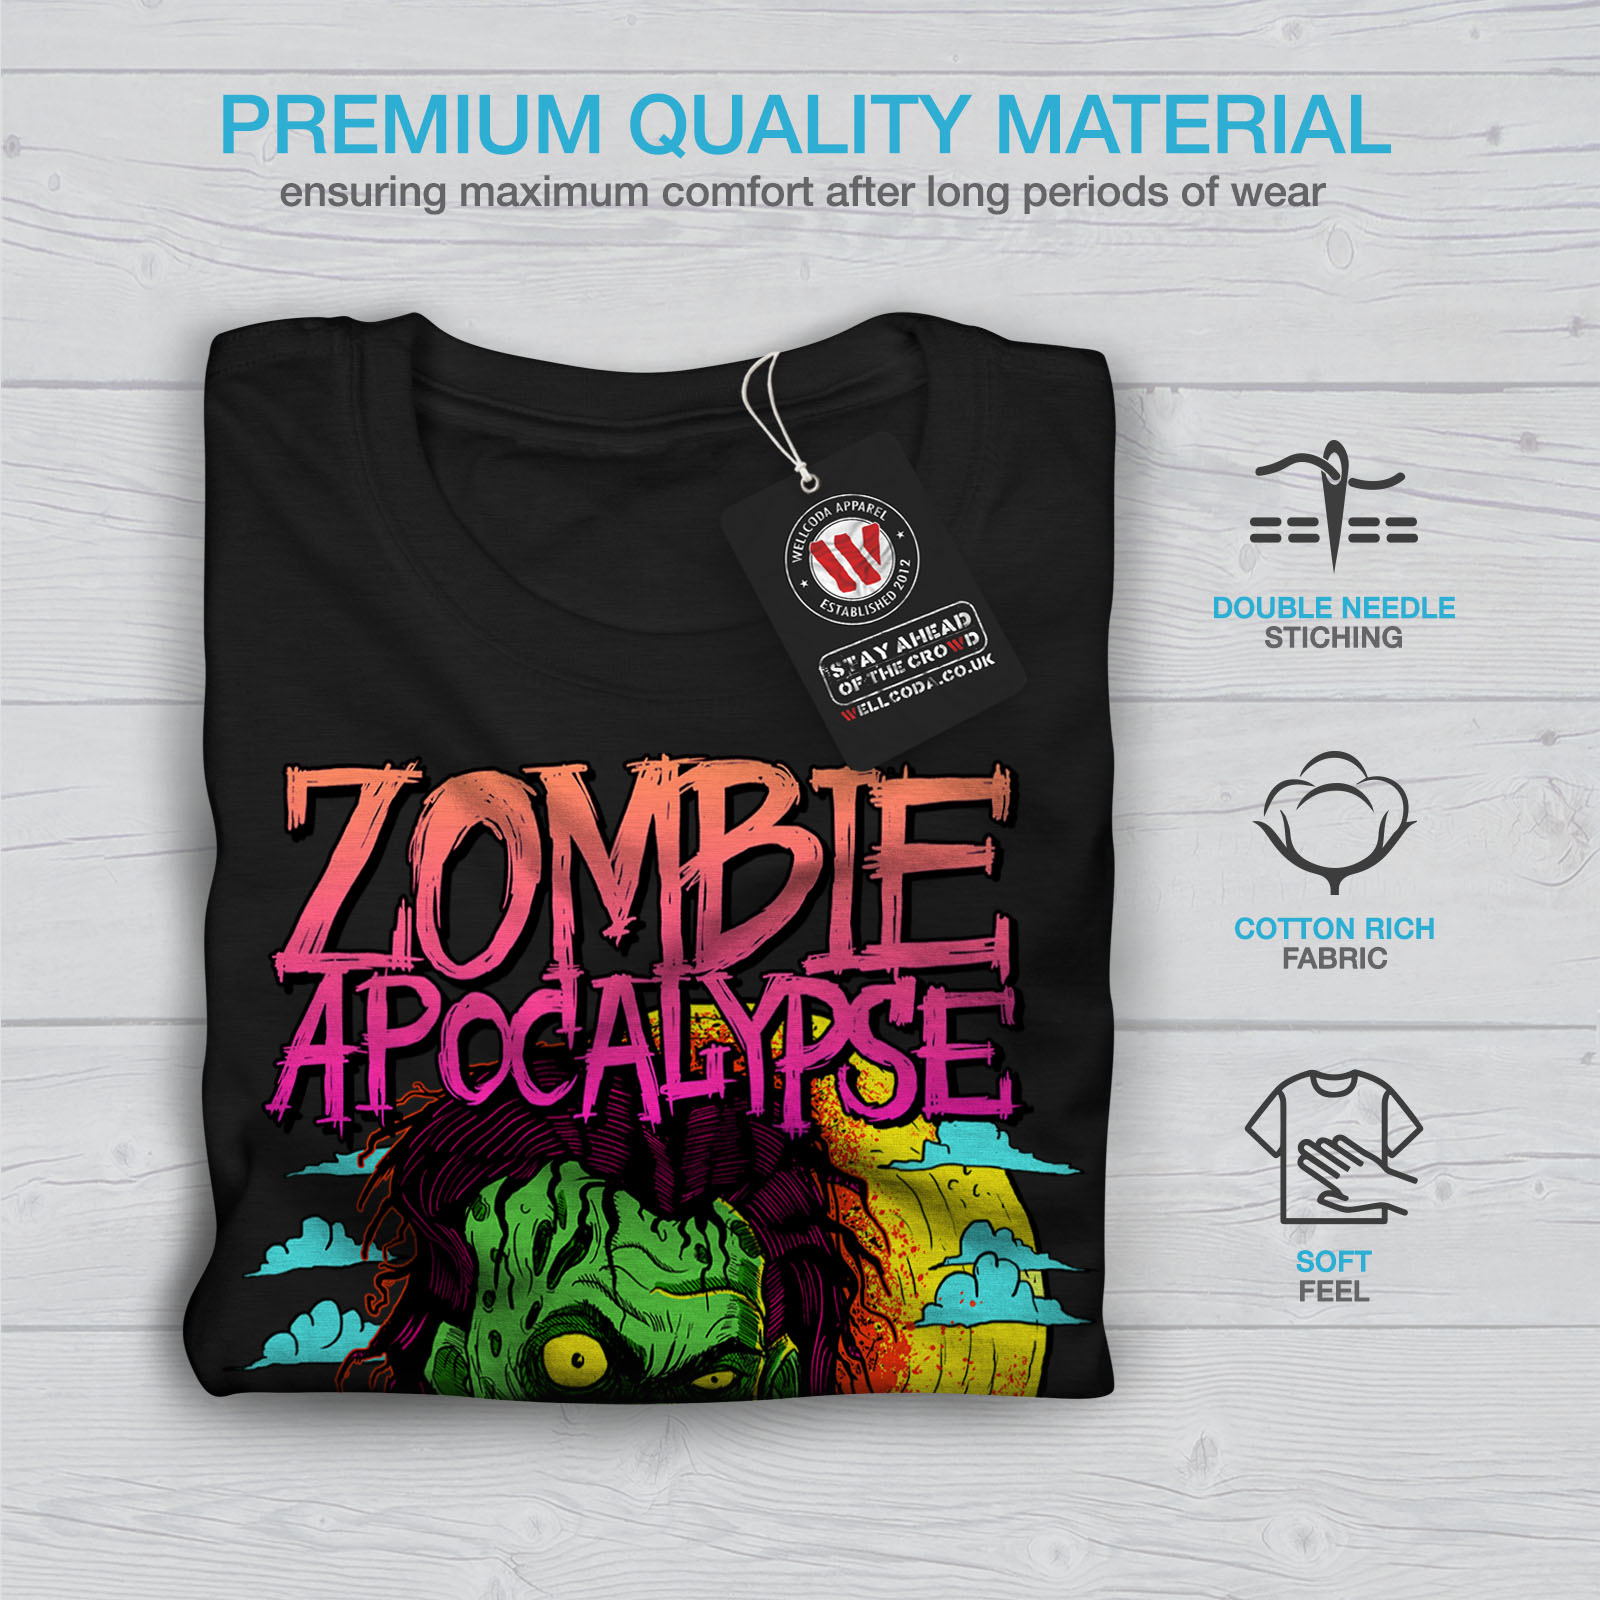 Wellcoda-Zombie-Apocalypse-Horror-Mens-T-shirt-Graphic-Design-Printed-Tee thumbnail 7